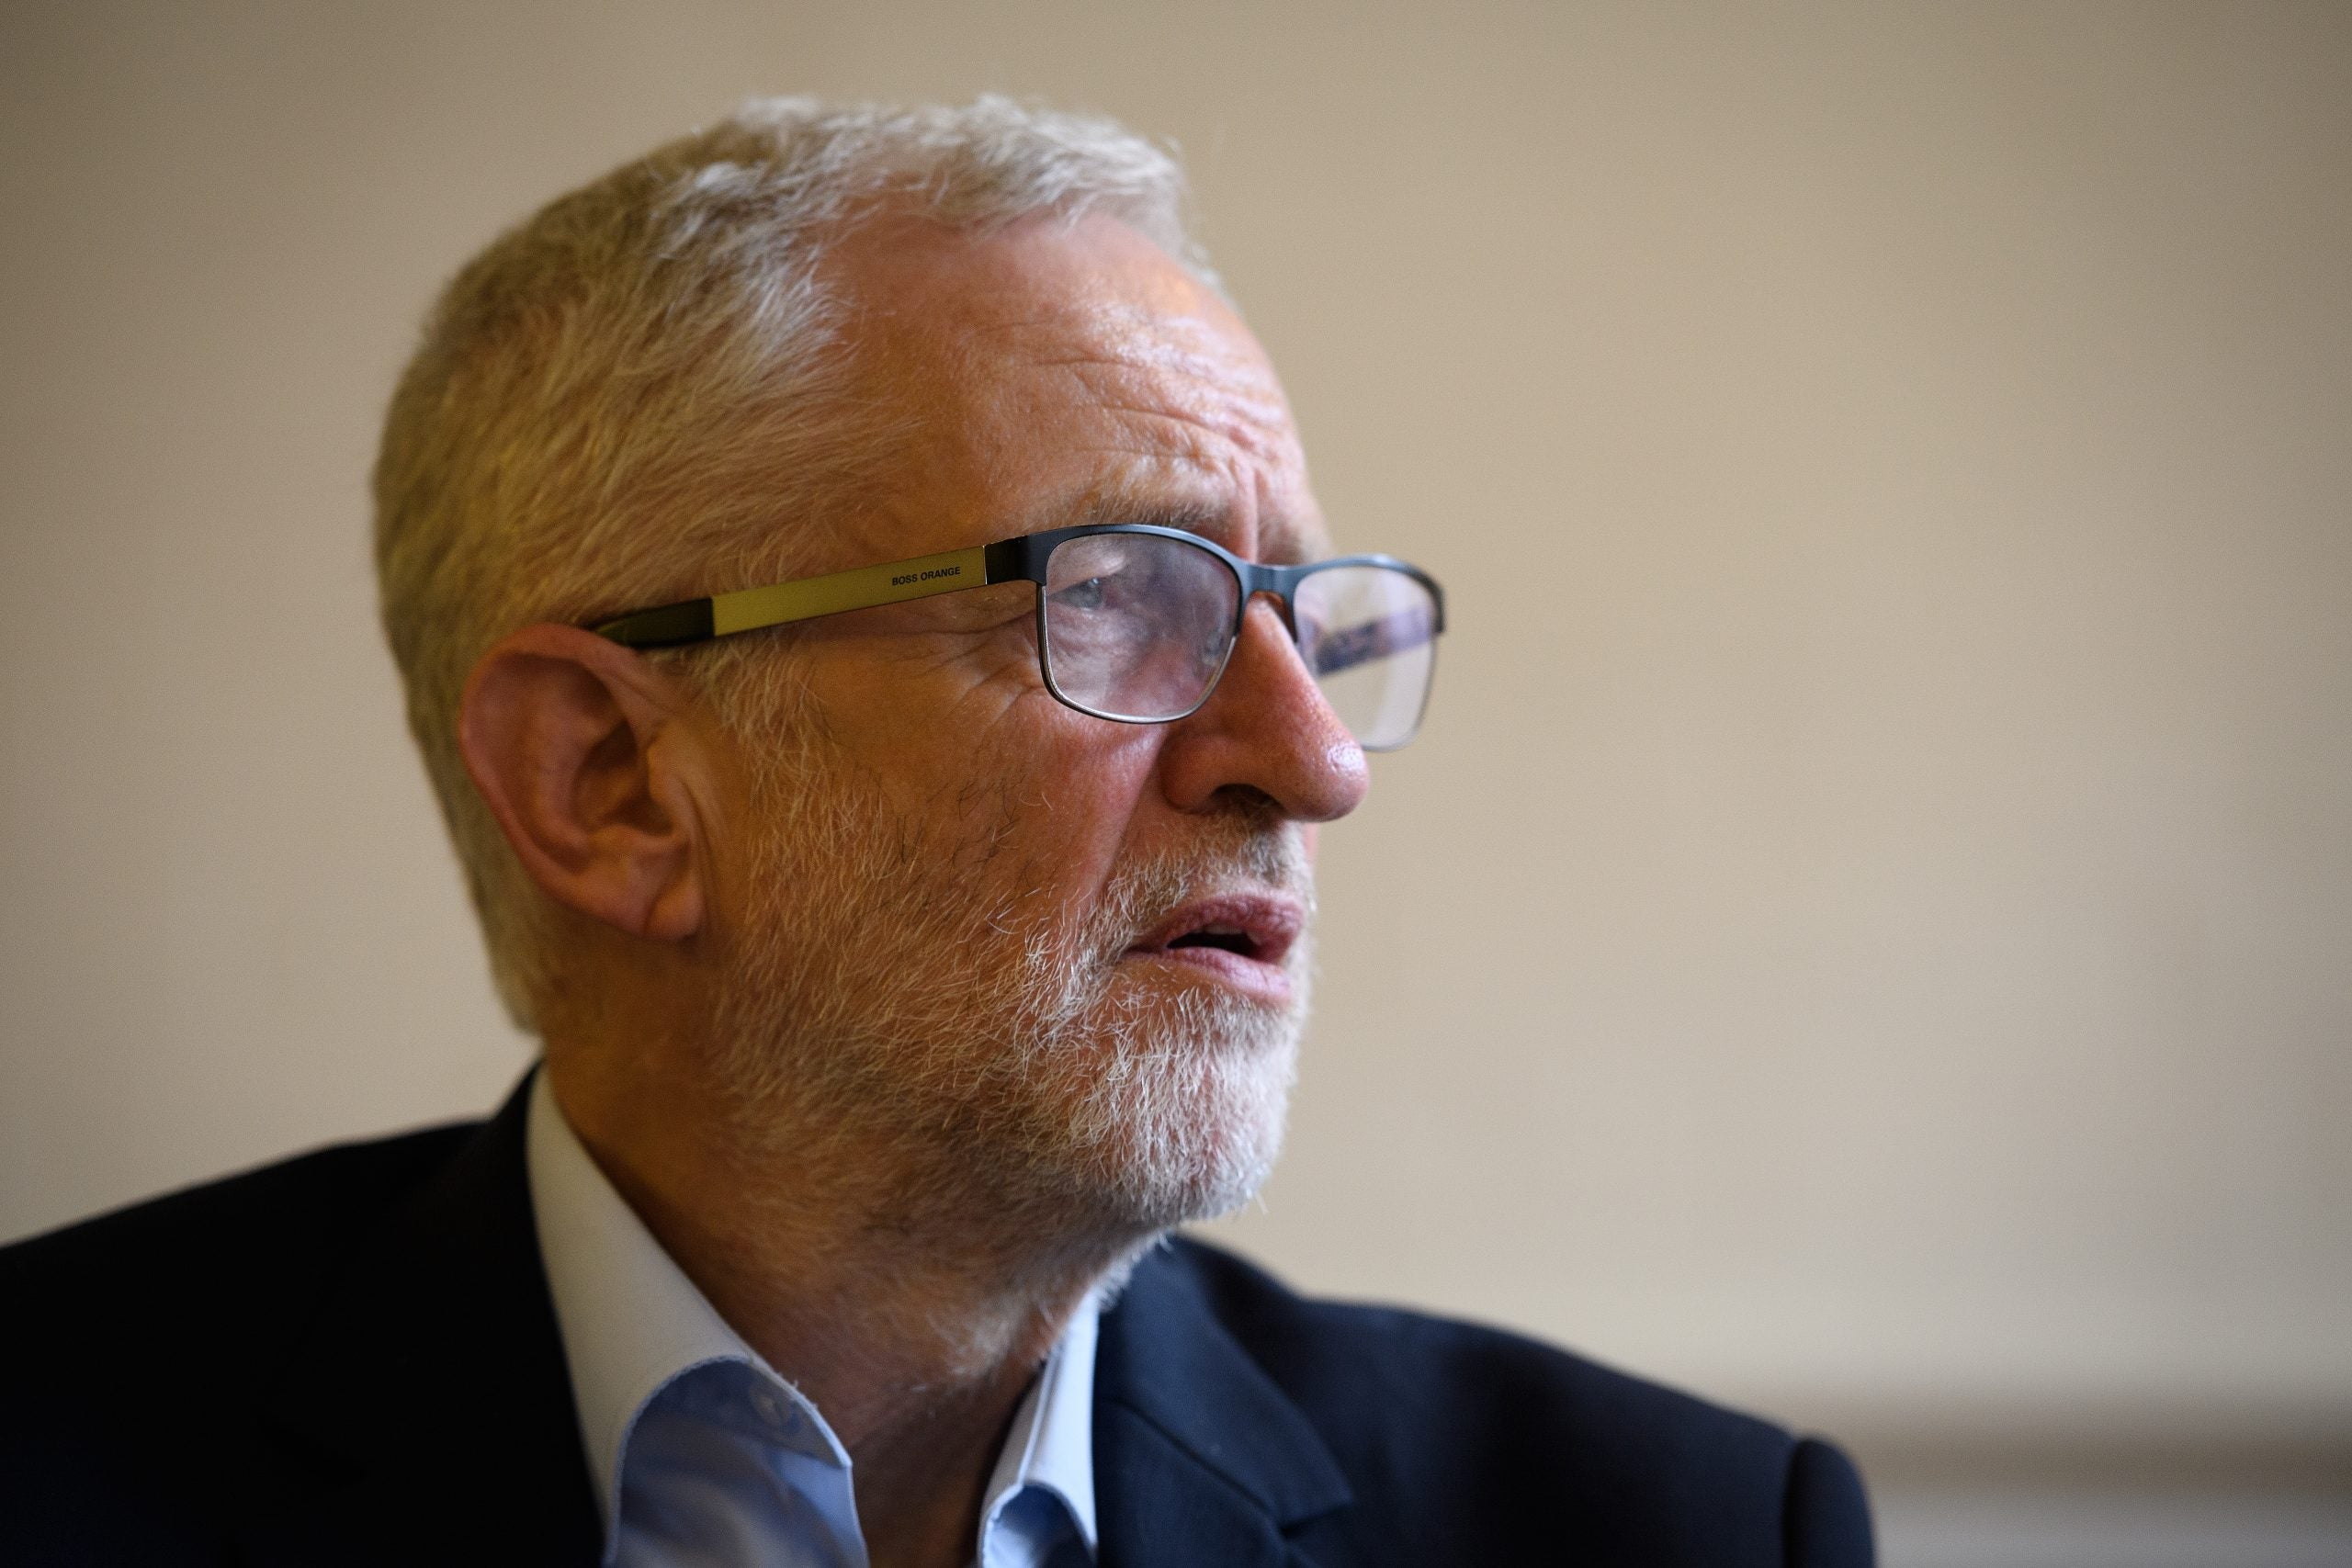 Commons Confidential: Corbyn's summertime blues